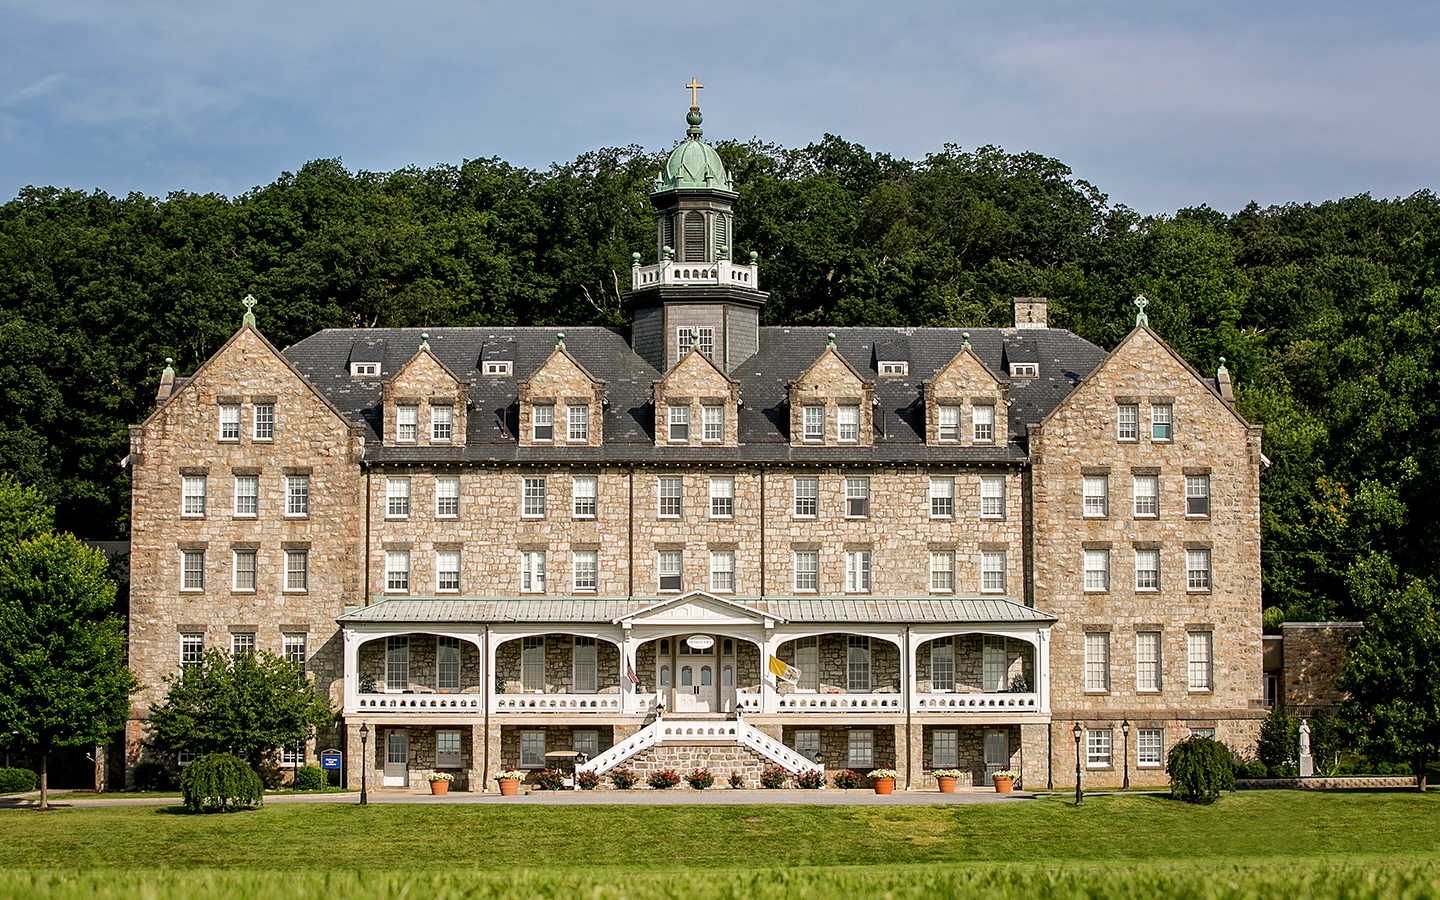 Mount St. Mary's Seminary - a deacon looking to the future